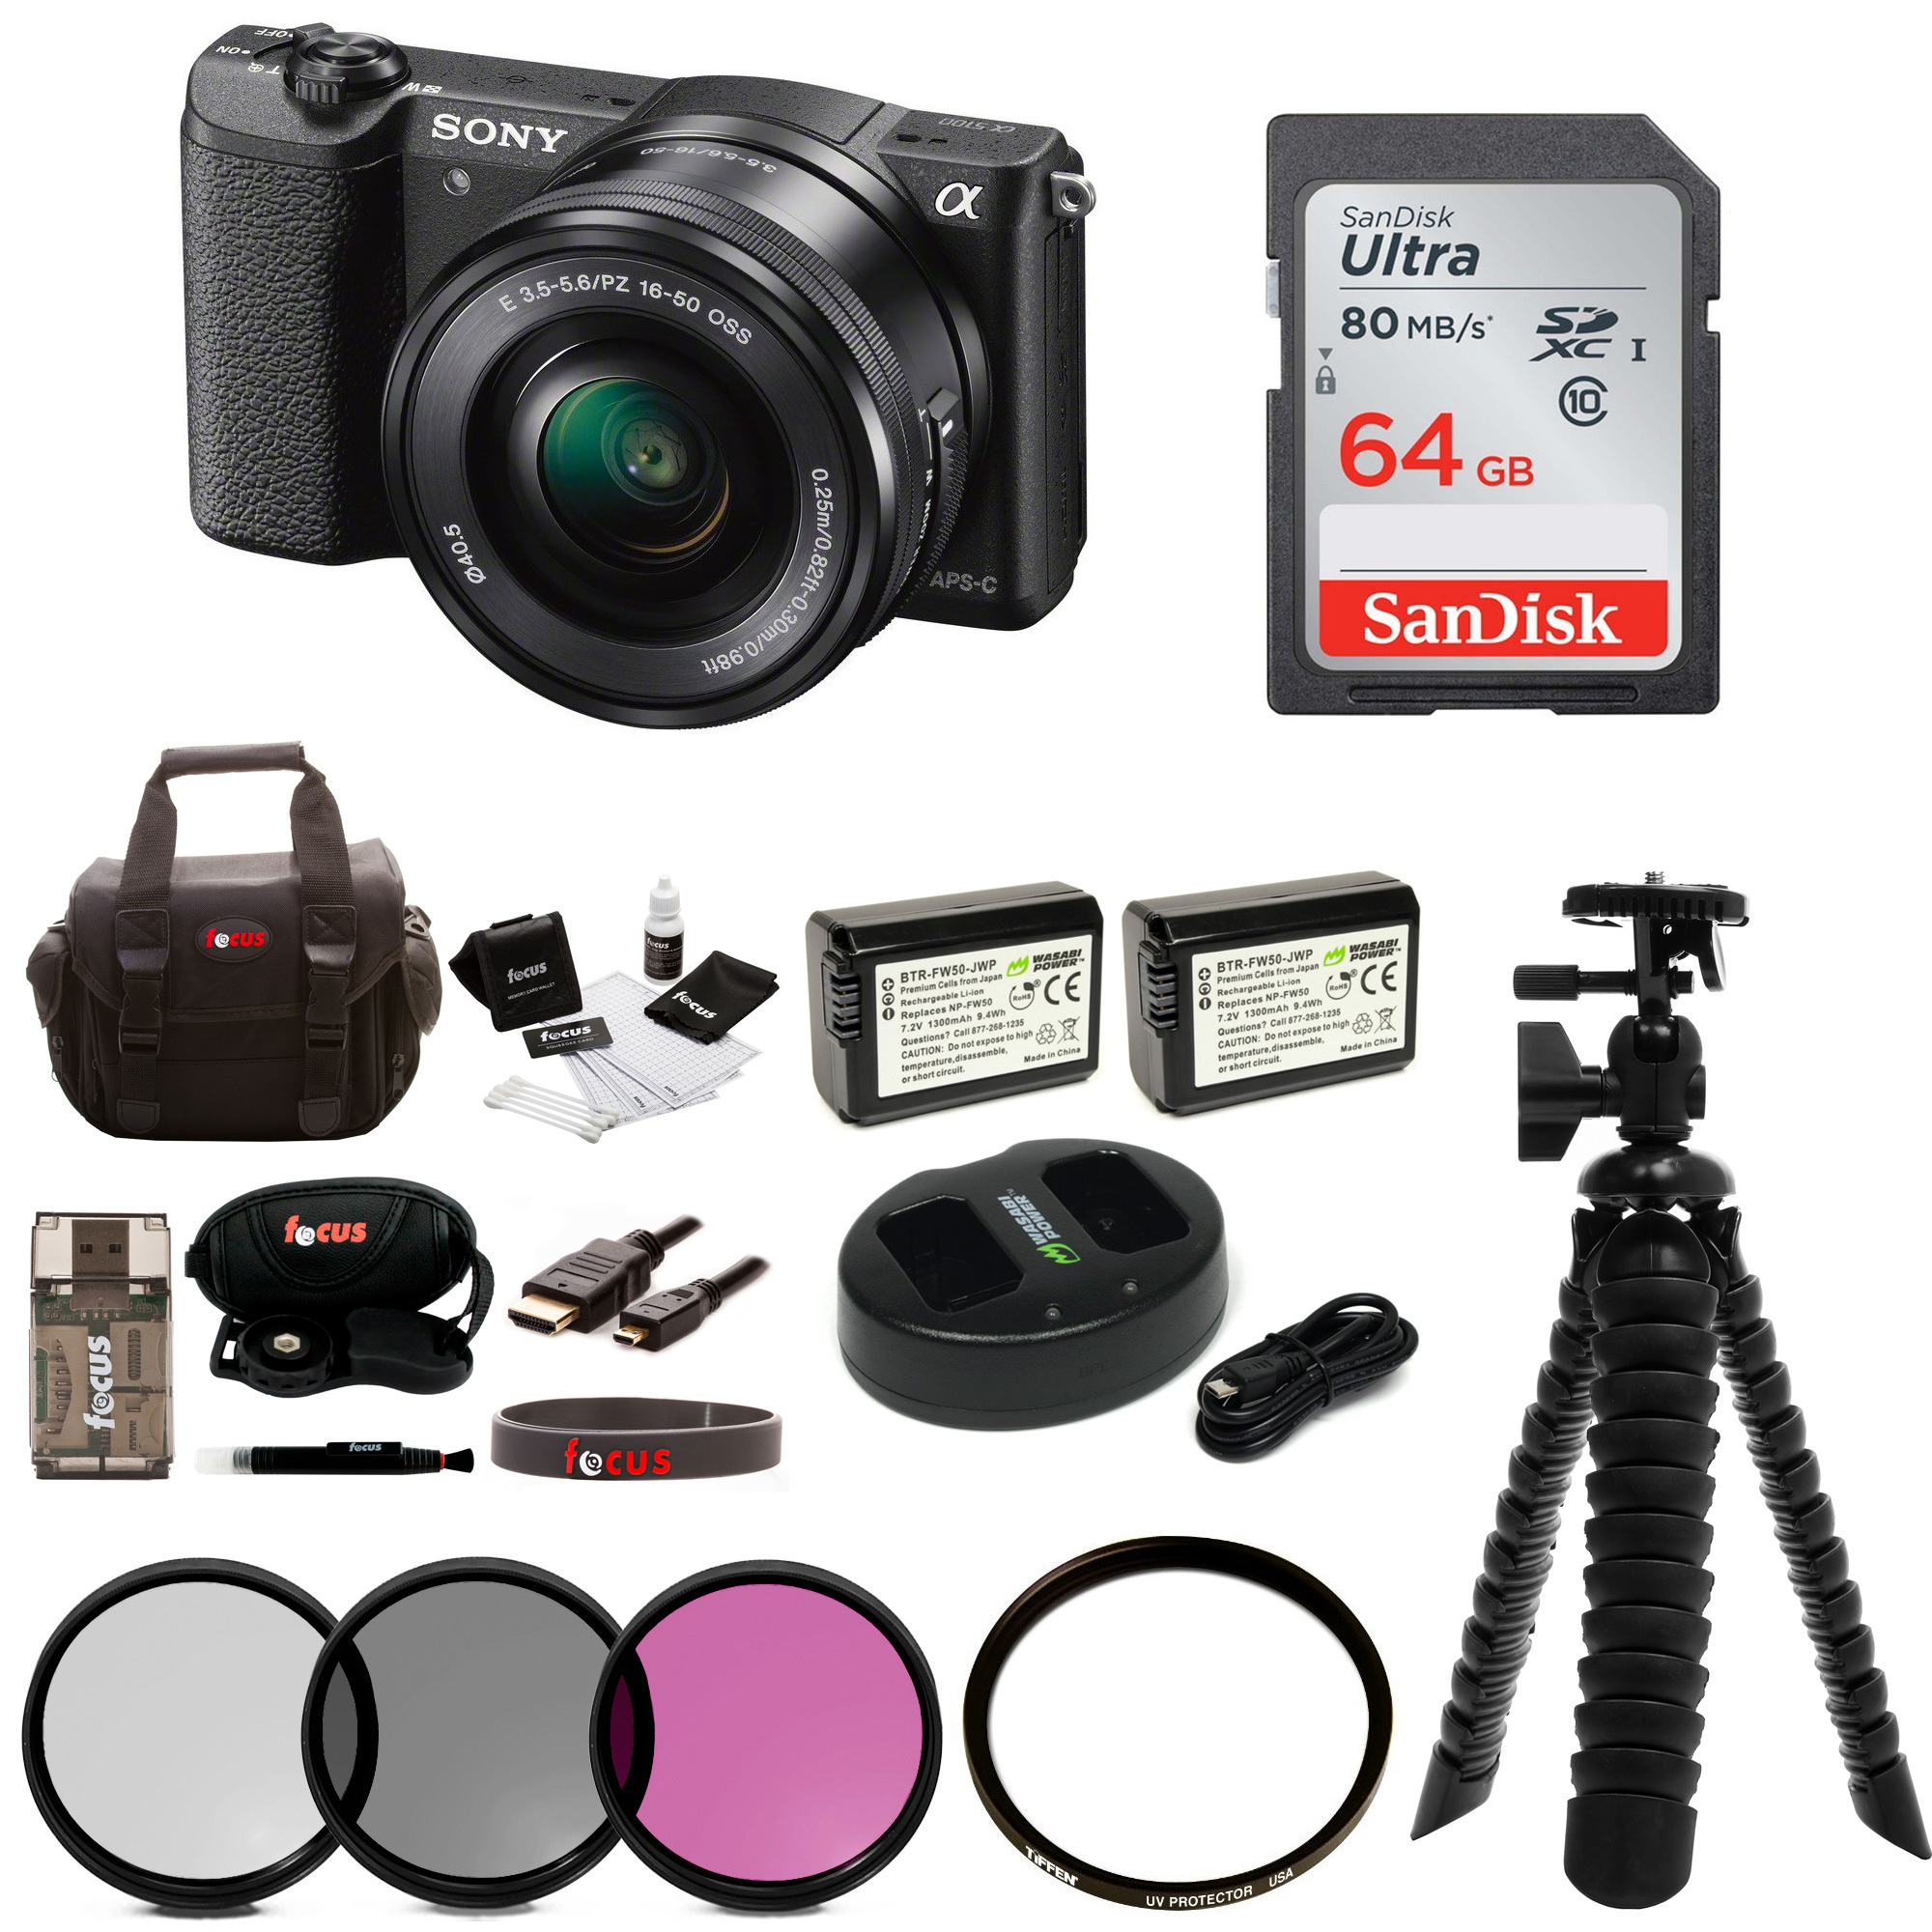 Sony a5100 24MP Interchangeable Lens Camera with 16-50mm Lens (Black) + SanDisk 64GB Card + Tripod + Accessory Bundle